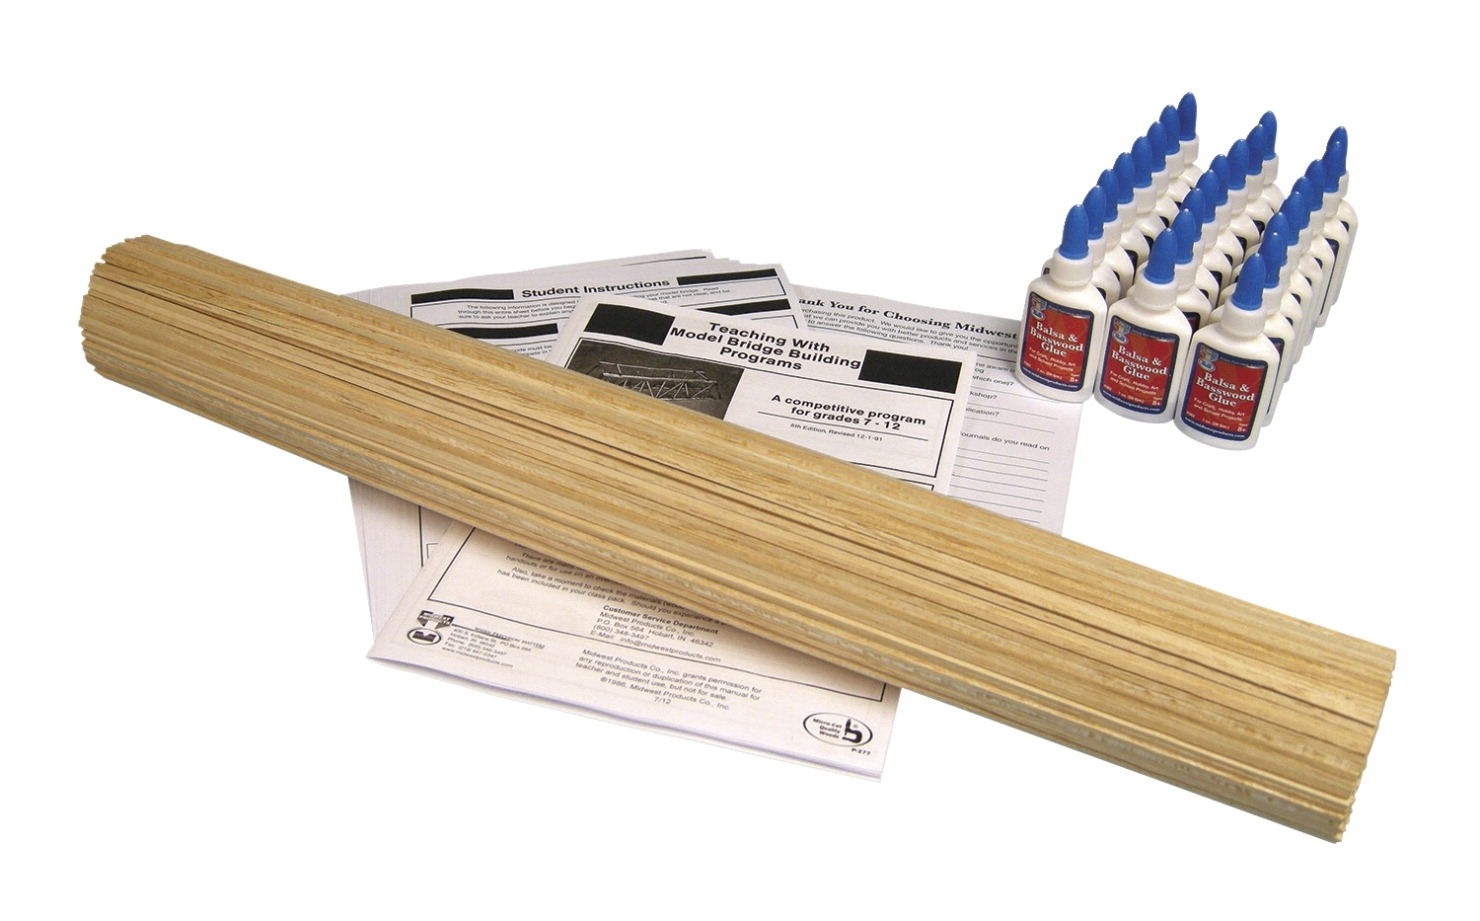 Sports & Fitness Physical Education & Sport Team Building Activities & Equipment Team Building Activities & Games - 571181 - Frey Scientific Balsawood Or Basswood Bridge Building Kit 571181